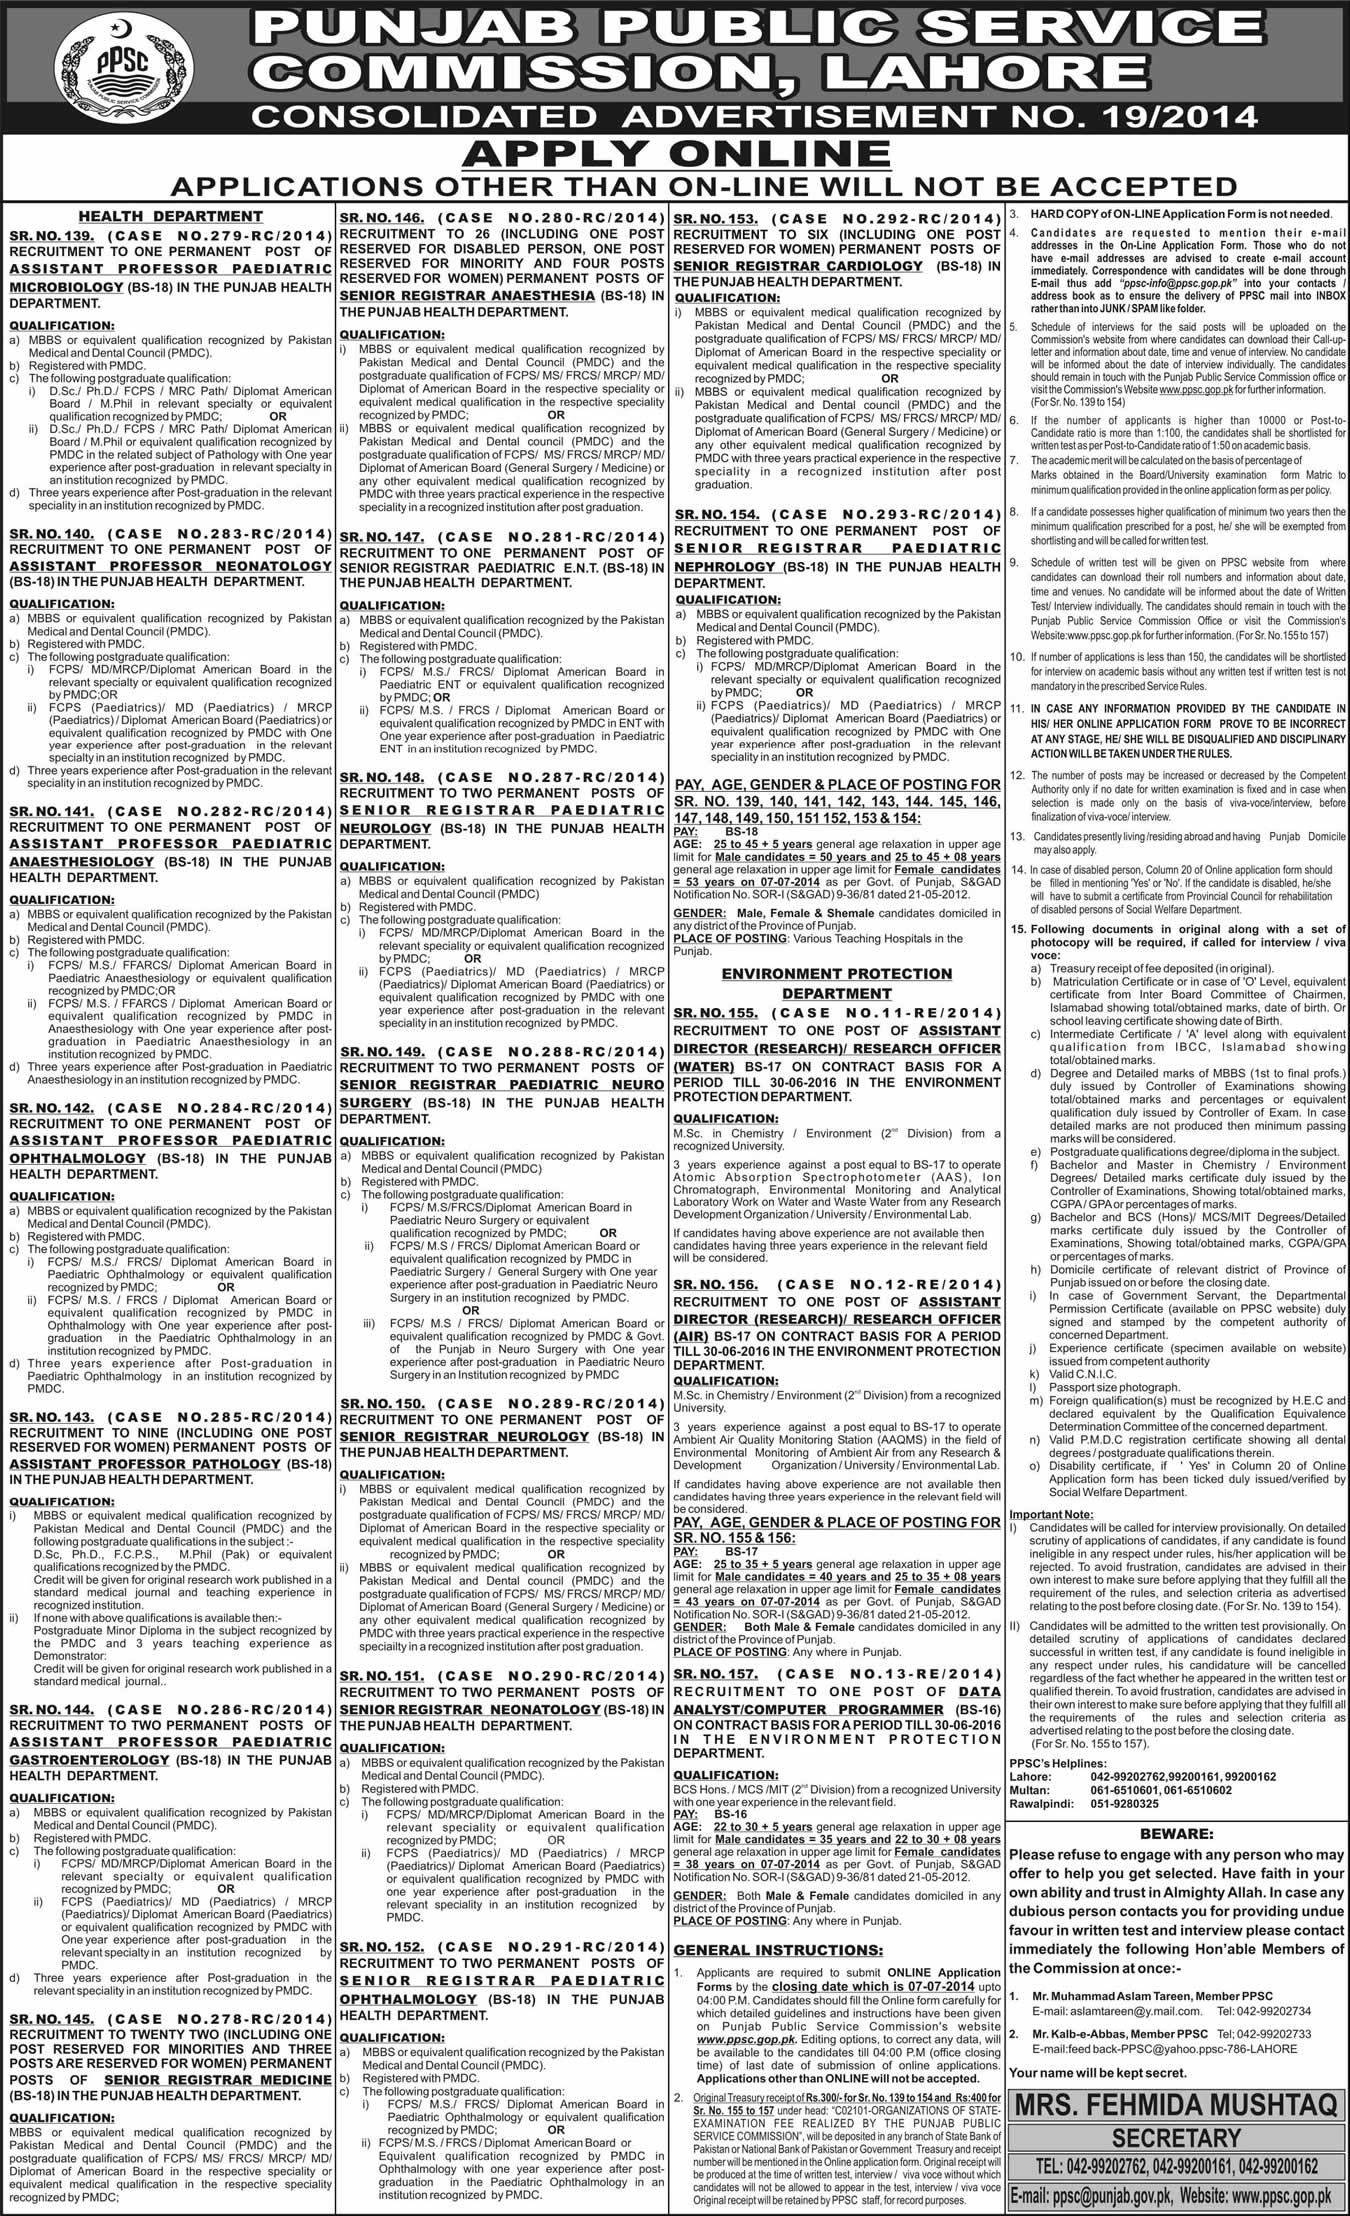 PPSC Jobs June 2014 Consolidated Advertisement No 19/2014